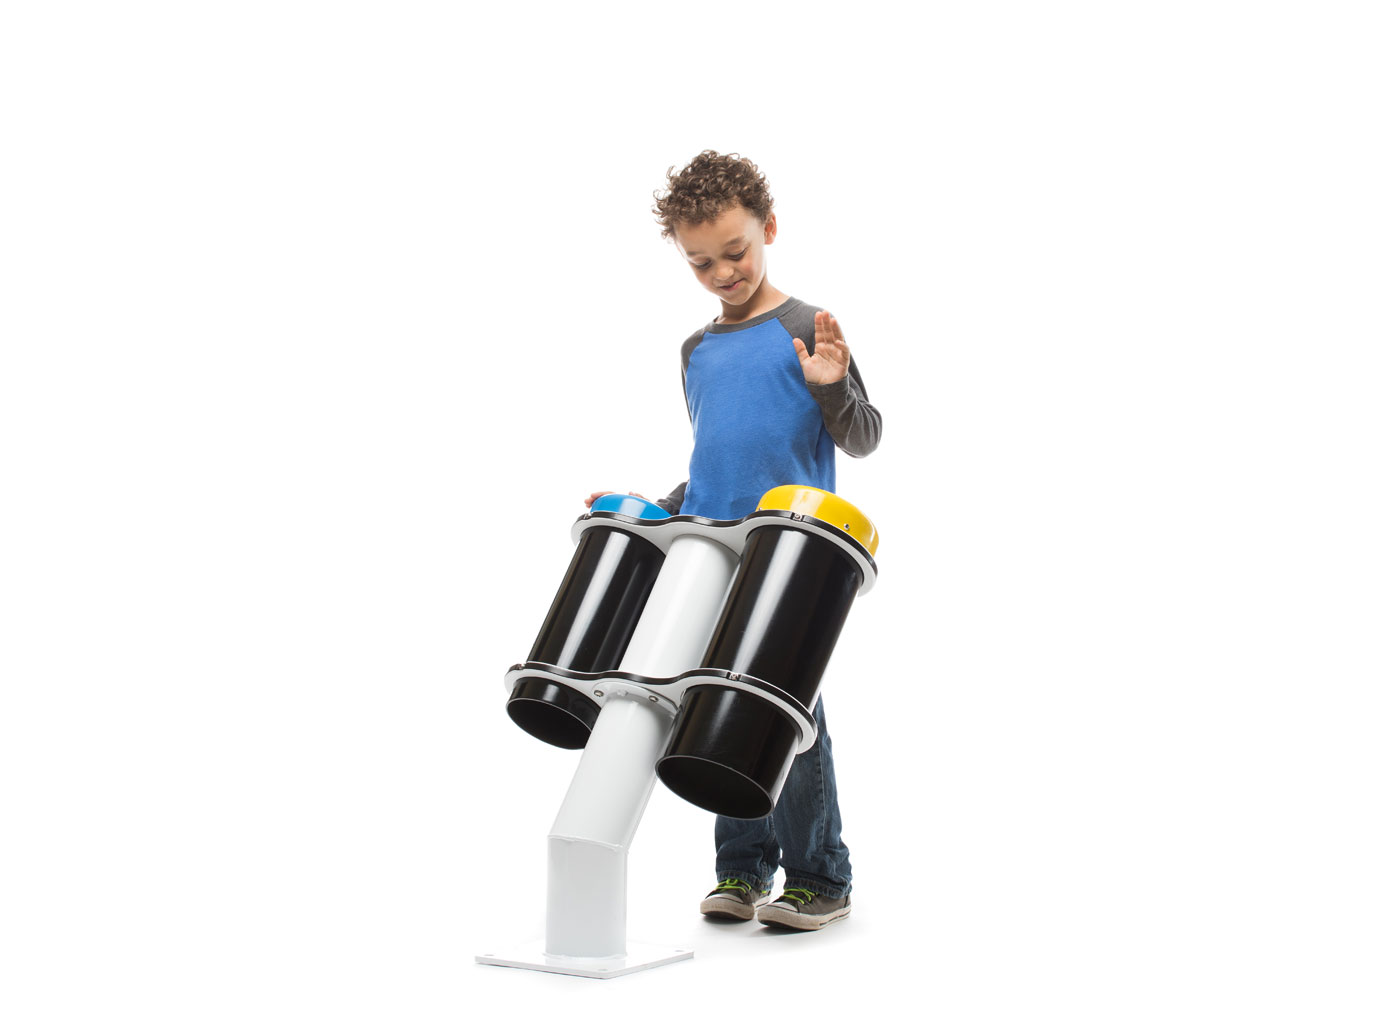 Conga Drums for Playground